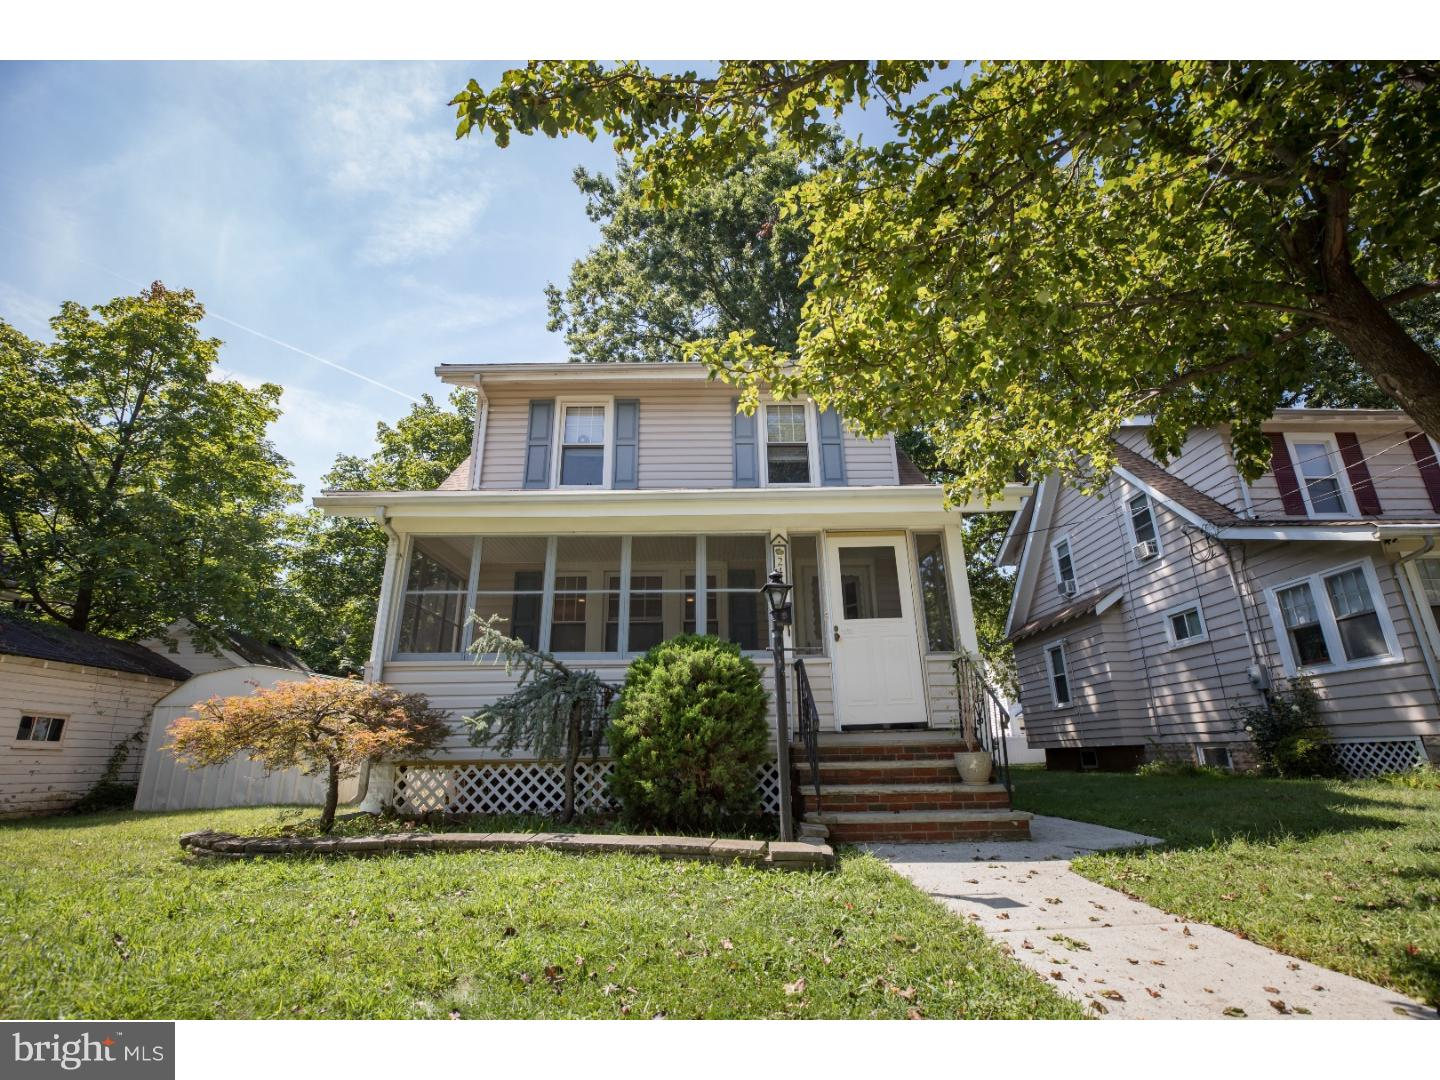 244 W LAKE AVENUE, RAHWAY, NJ 07065